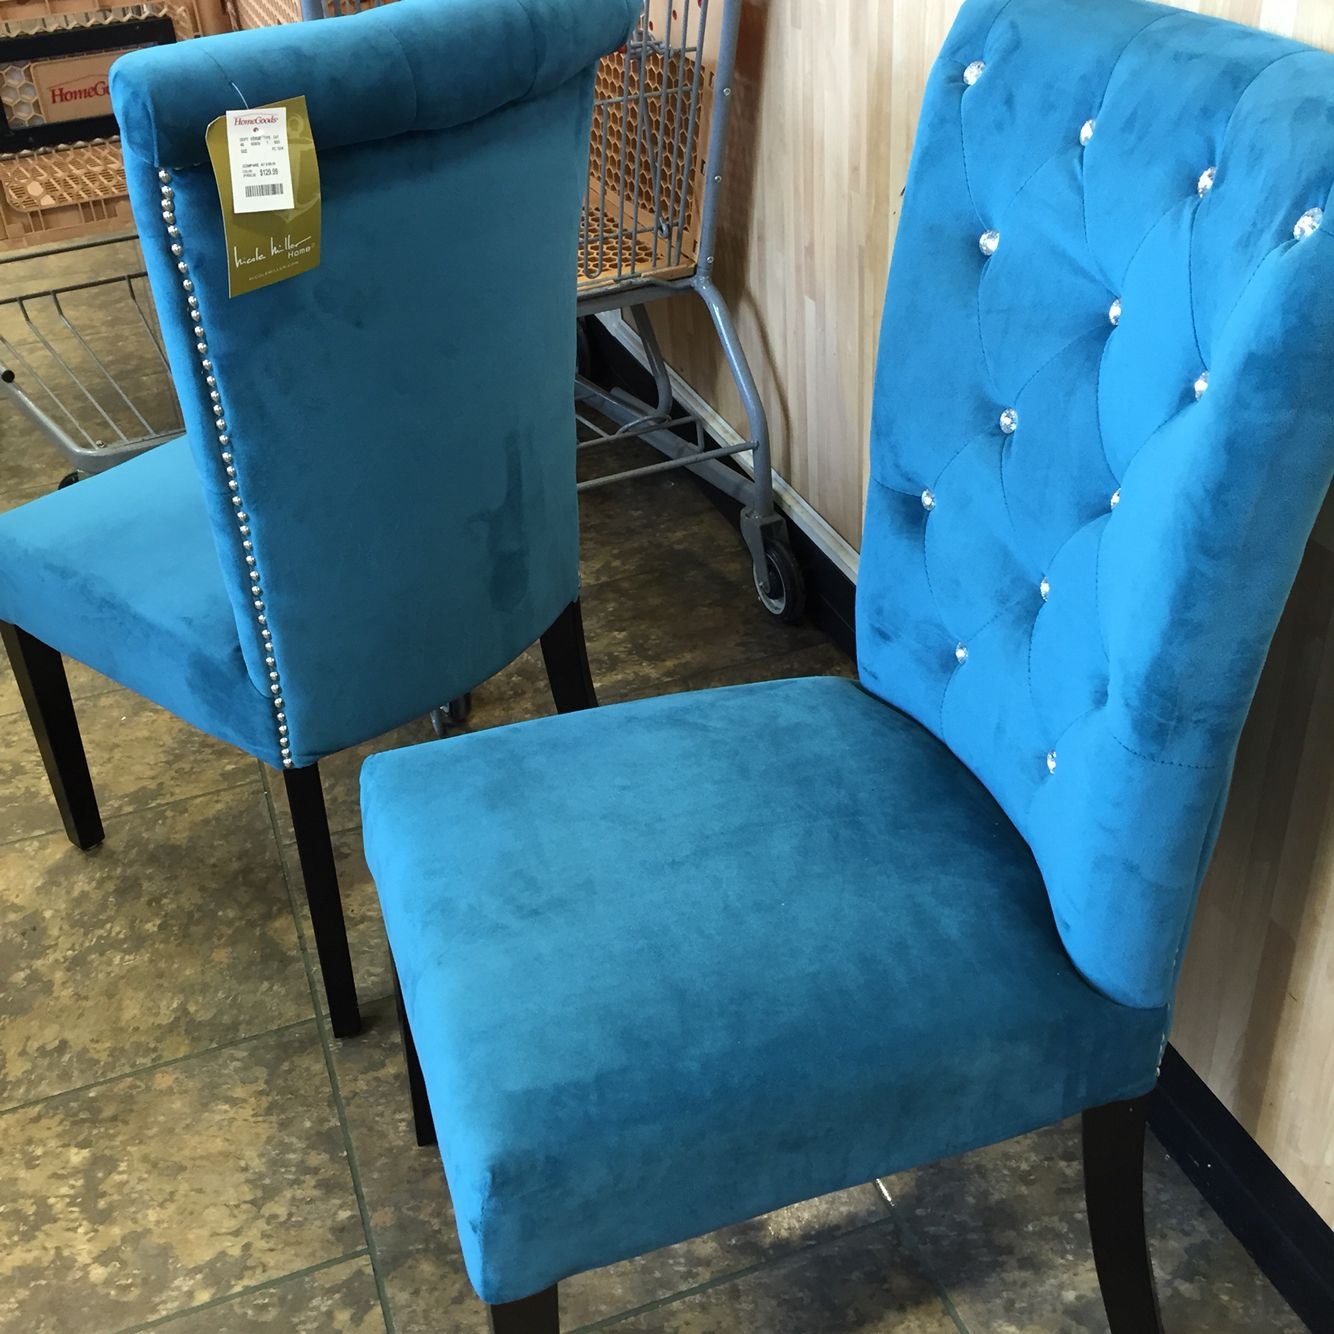 My ohhhhhh my what a steal I got for these bad boys   Home Goods in  Brooklyn s very own Flatbush Junction location the other day love these  chairs I had to. My ohhhhhh my what a steal I got for these bad boys   Home Goods